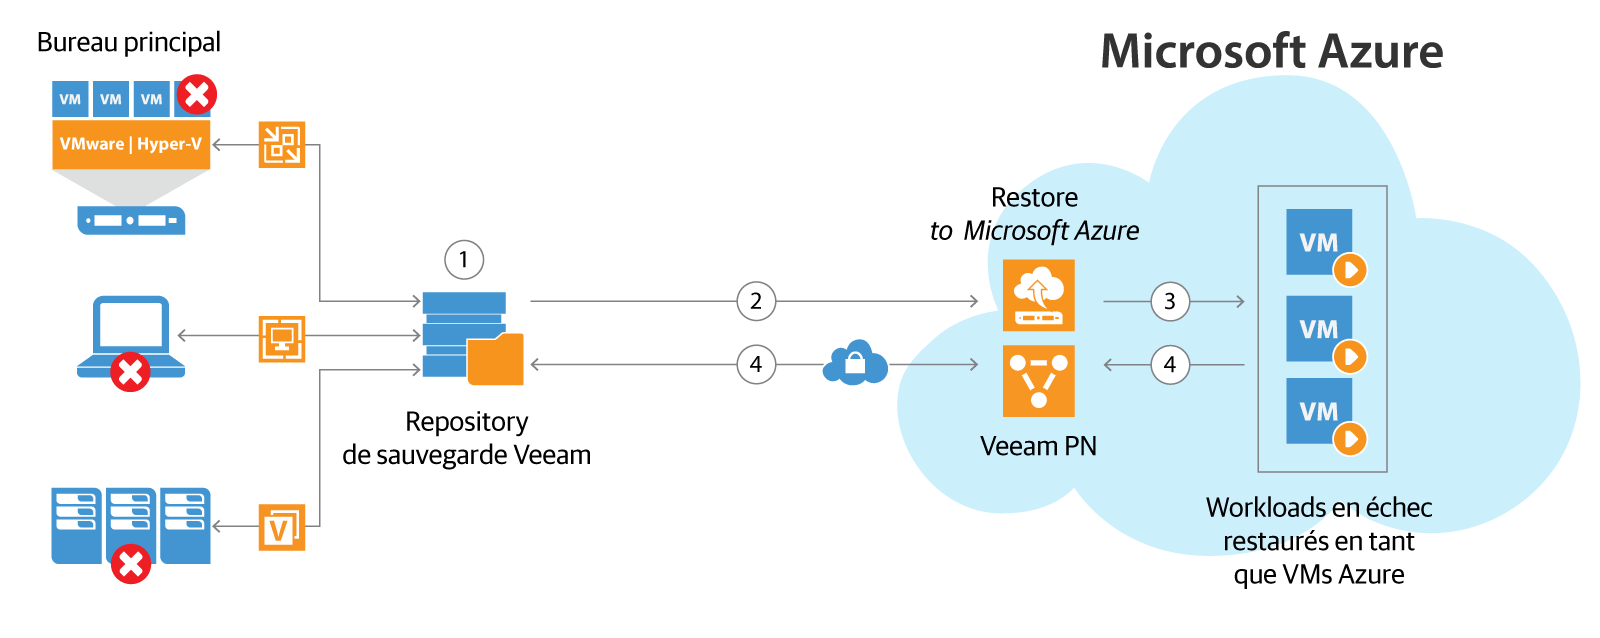 Veeam Disaster Recovery in Microsoft Azure combine les fonctionnalités uniques de Veeam PN pour Microsoft Azure (Veeam Powered Network) et de Direct Restore to Microsoft Azure pour offrir une « DR à la demande » dans le cloud exhaustive. (Veeam PN = Veeam Powered Network, VPN = réseau privé virtuel).